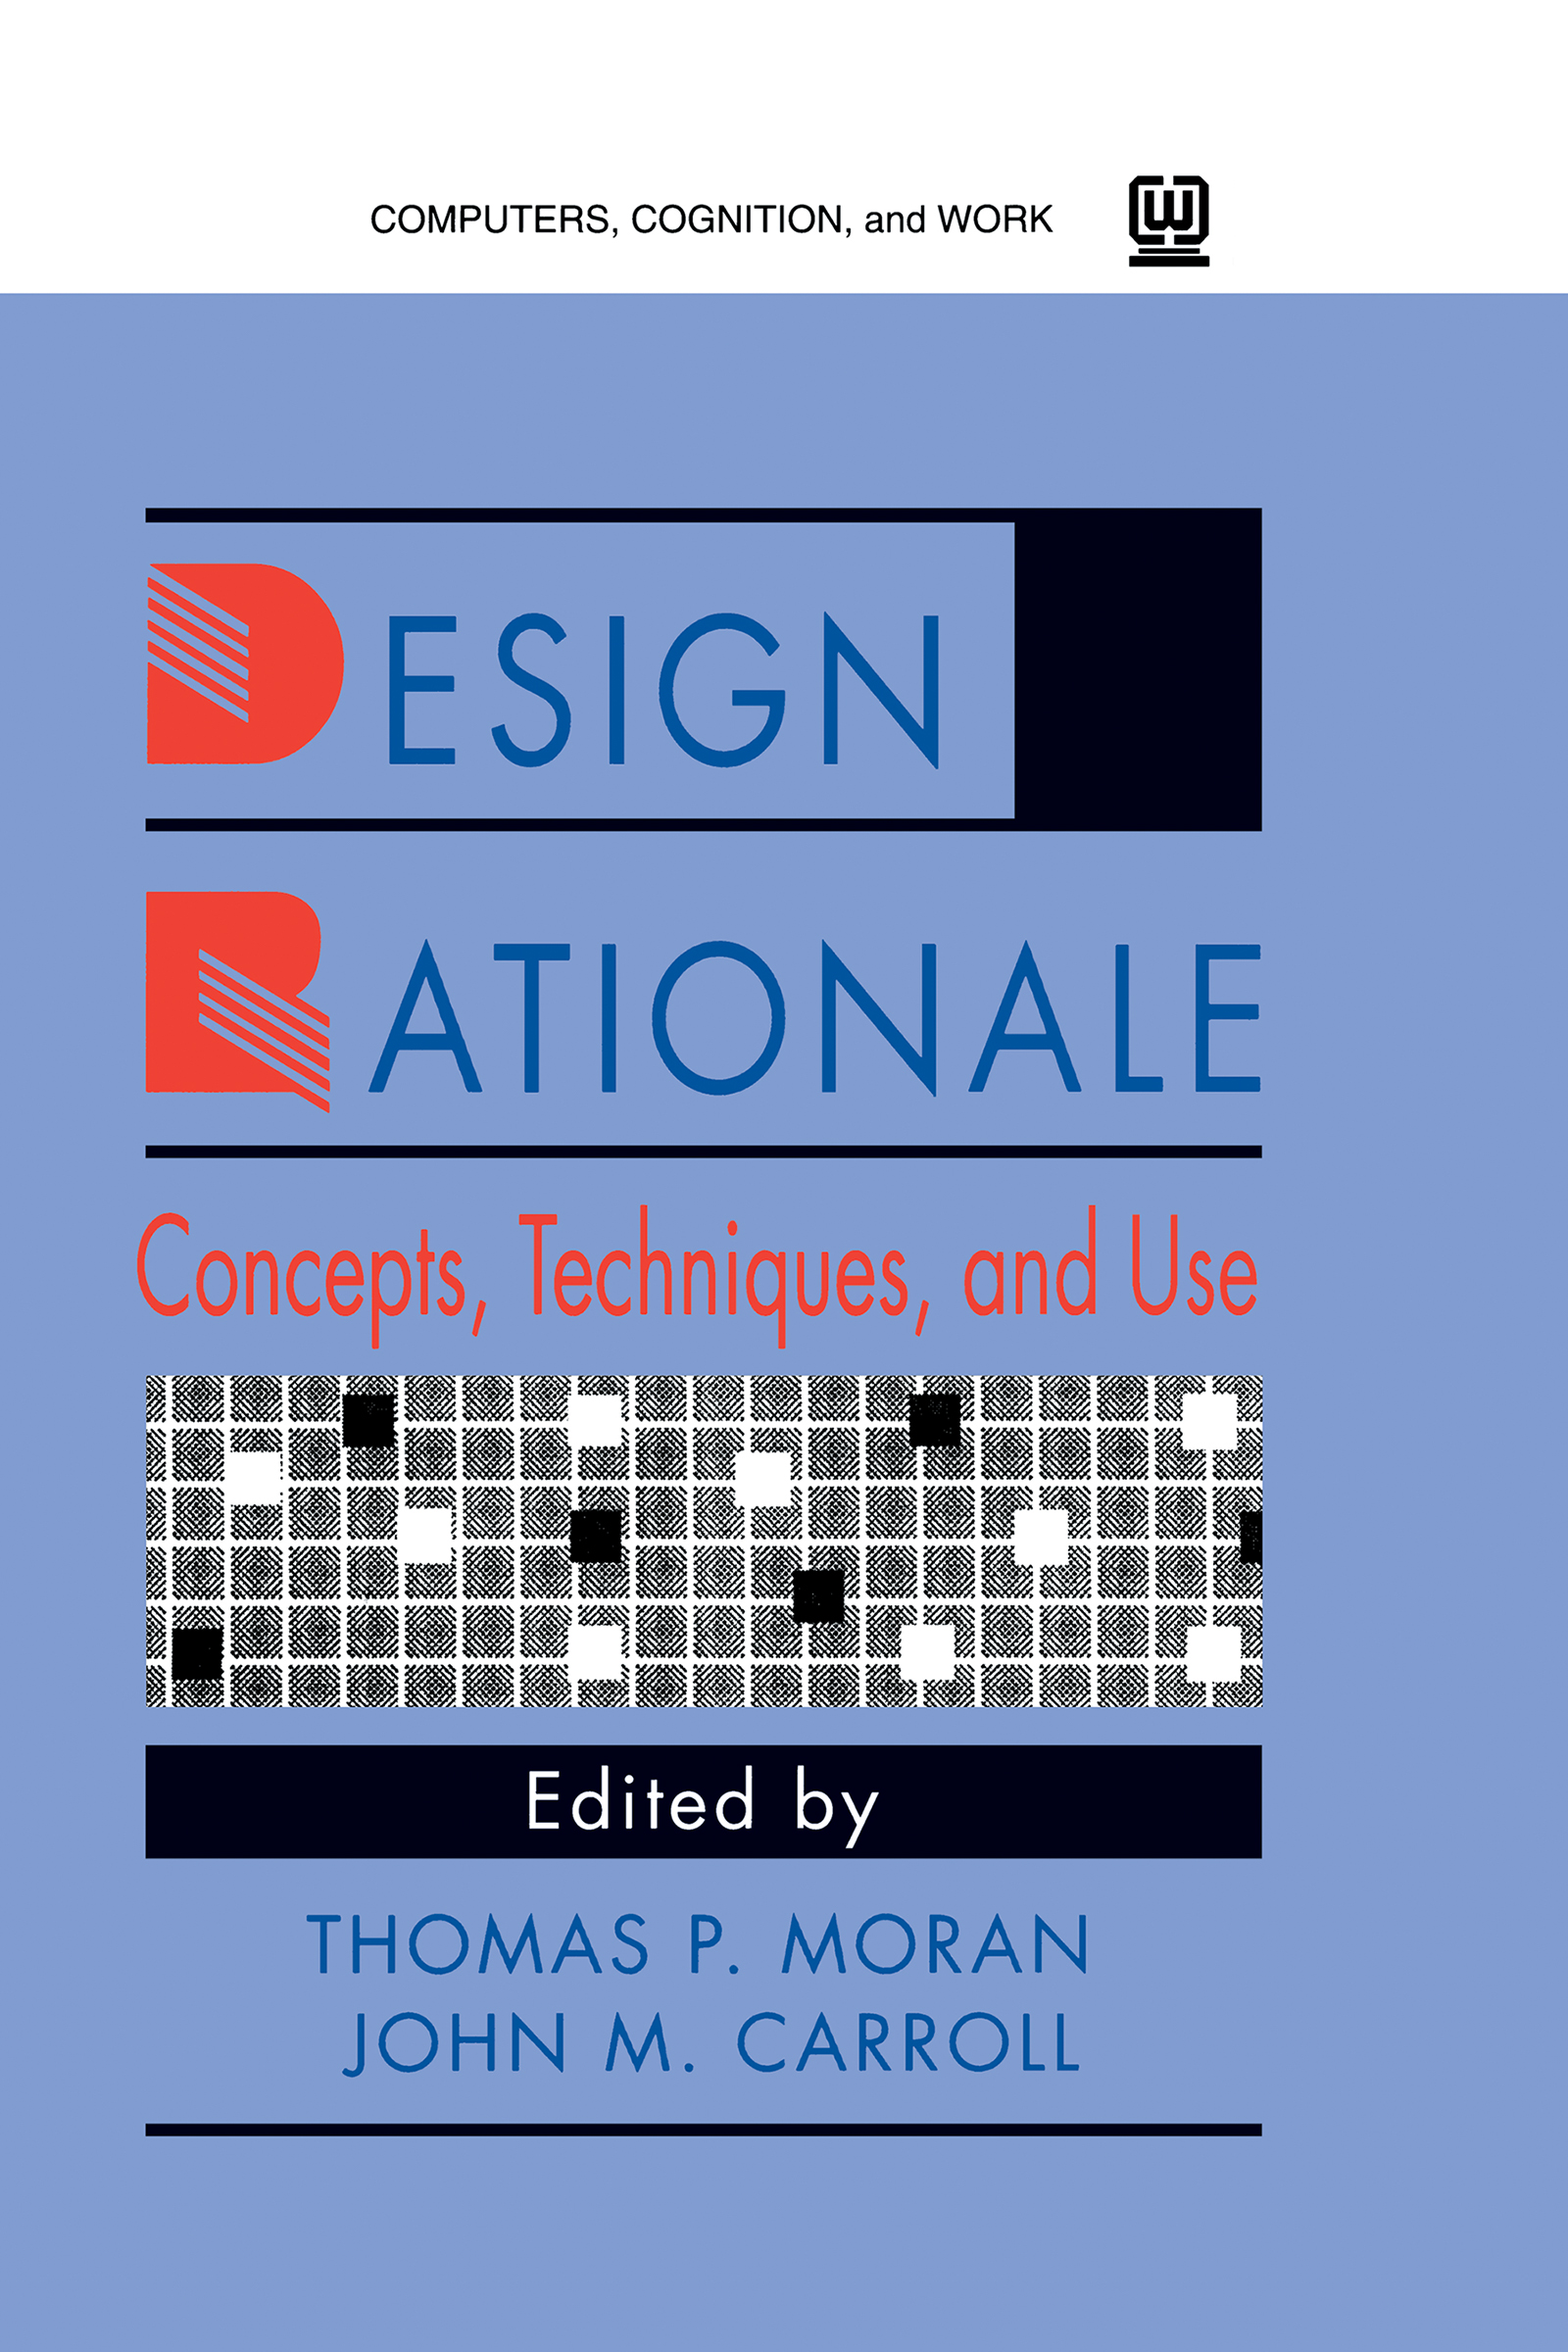 Overview of Design Rationale*